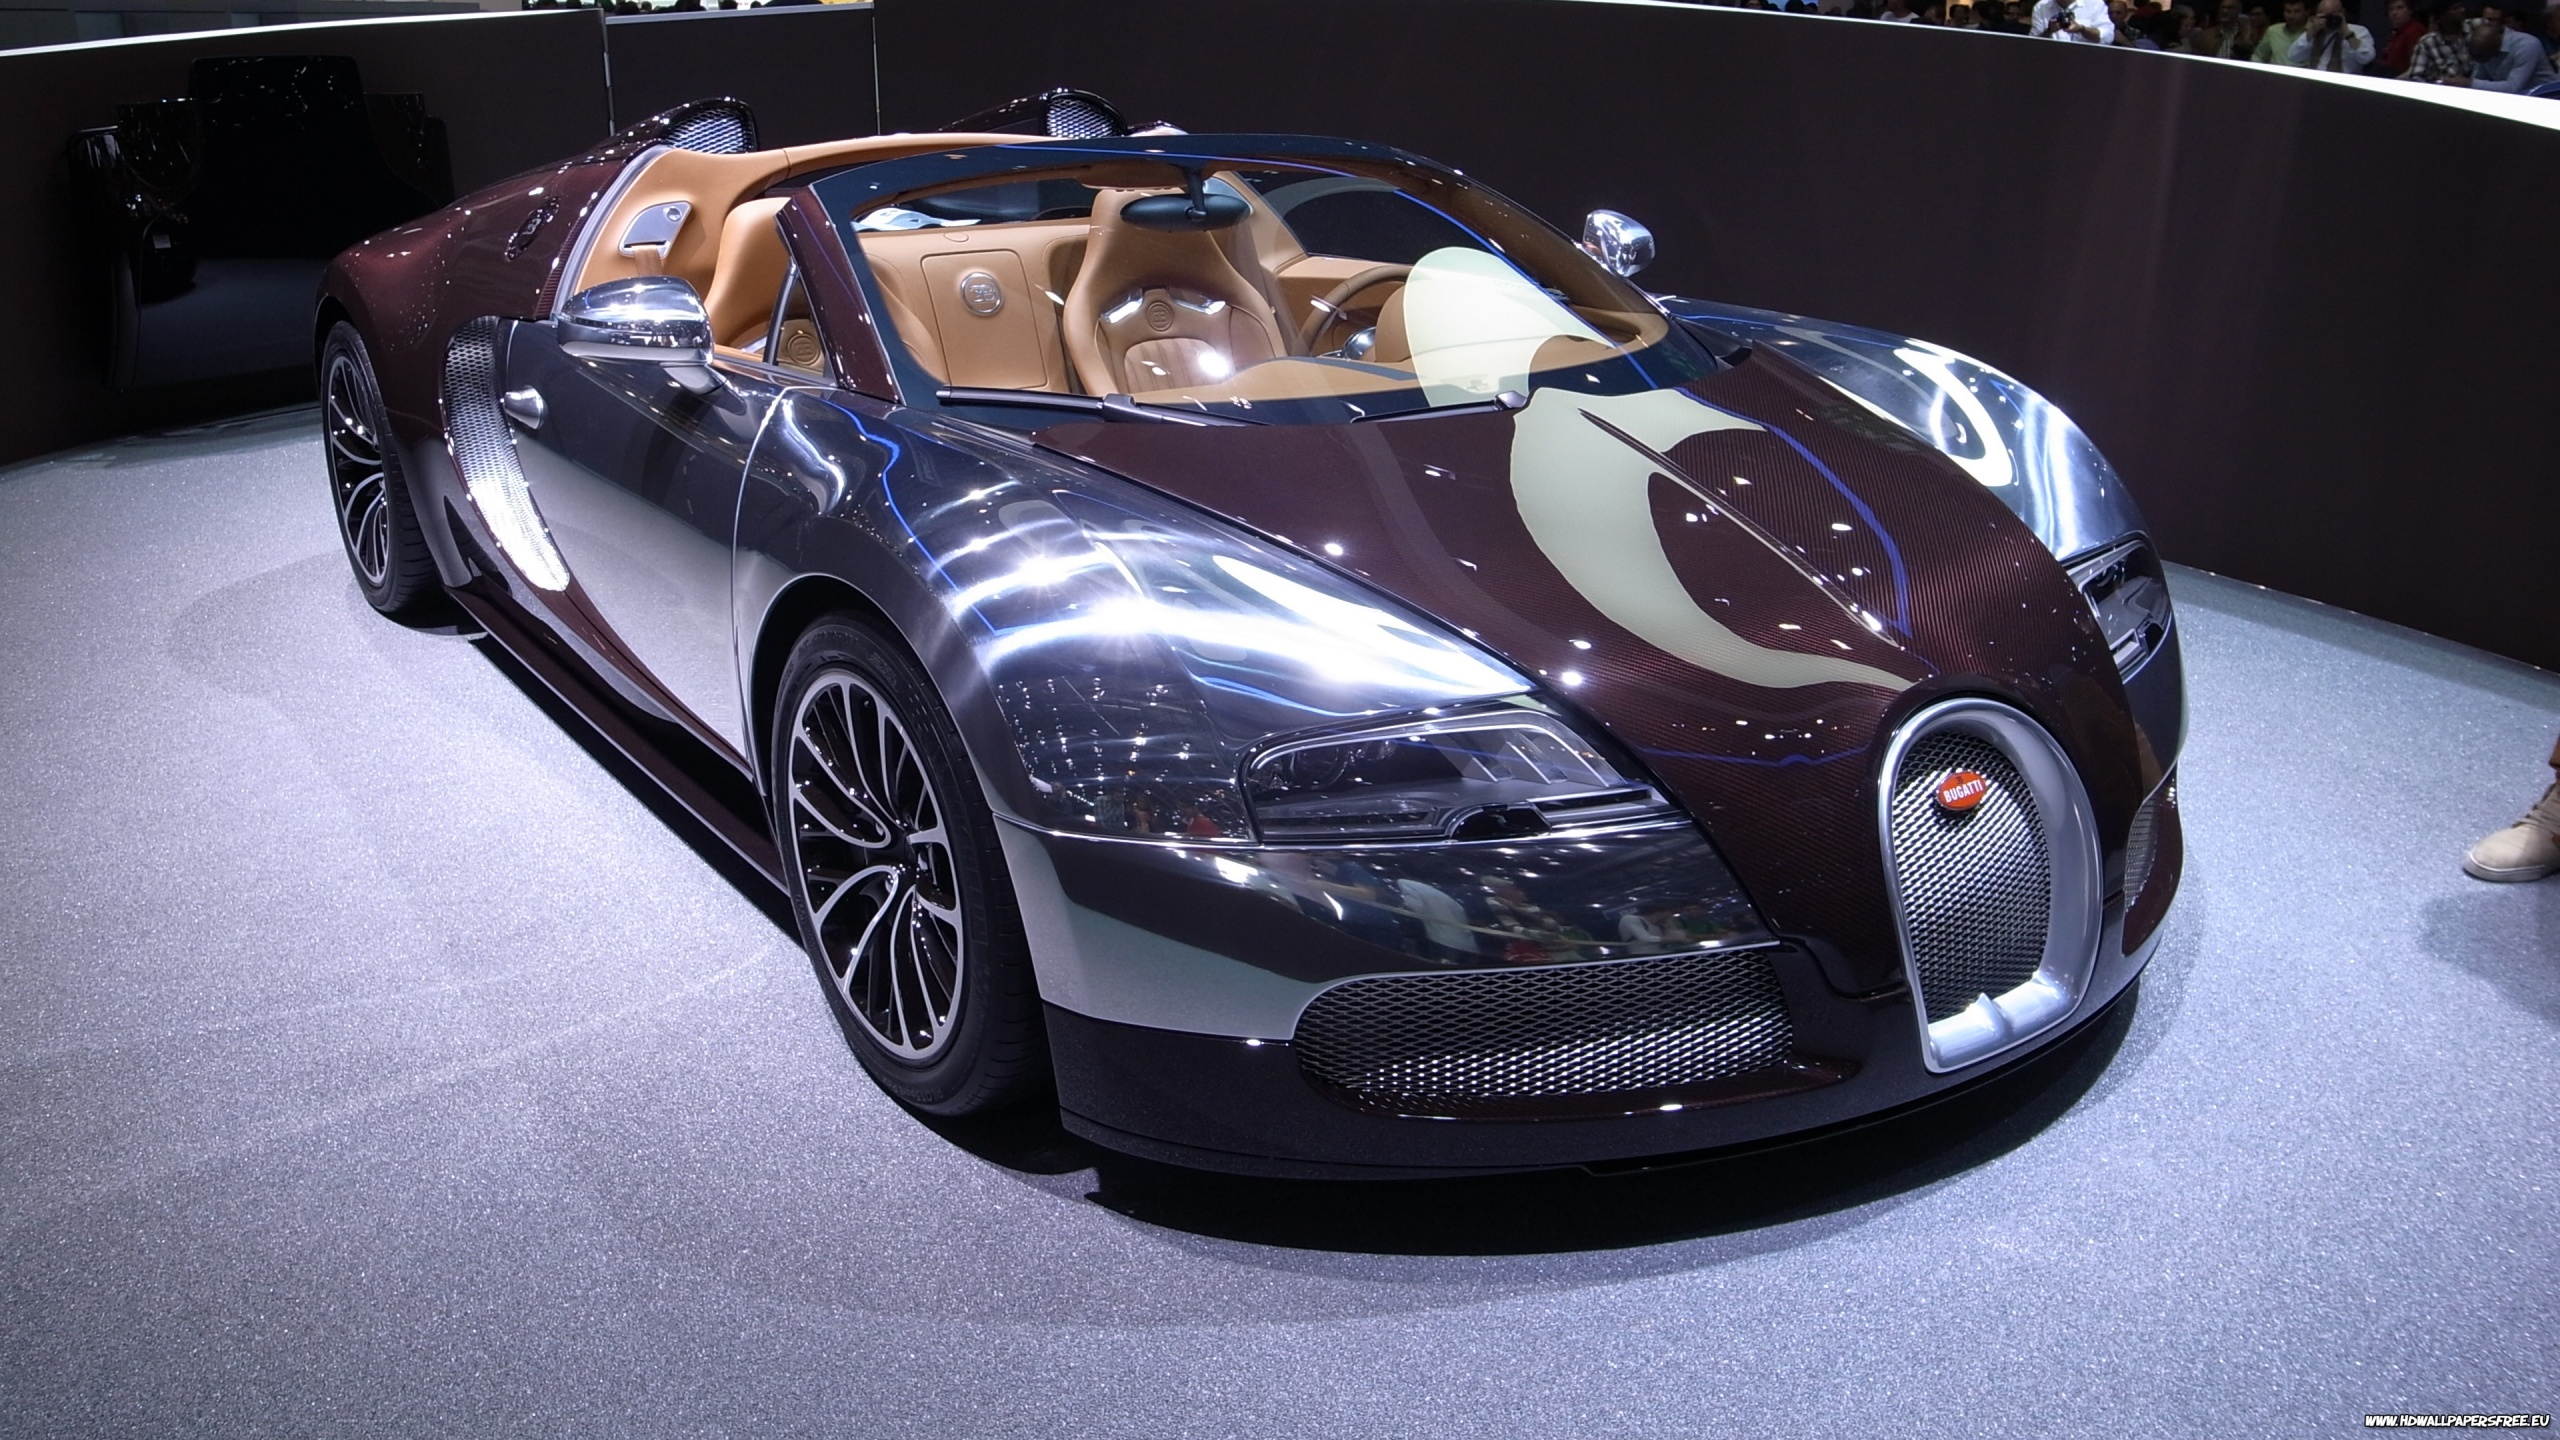 Bugatti Cars Wallpapers Hd: Veyron HD Wallpaper